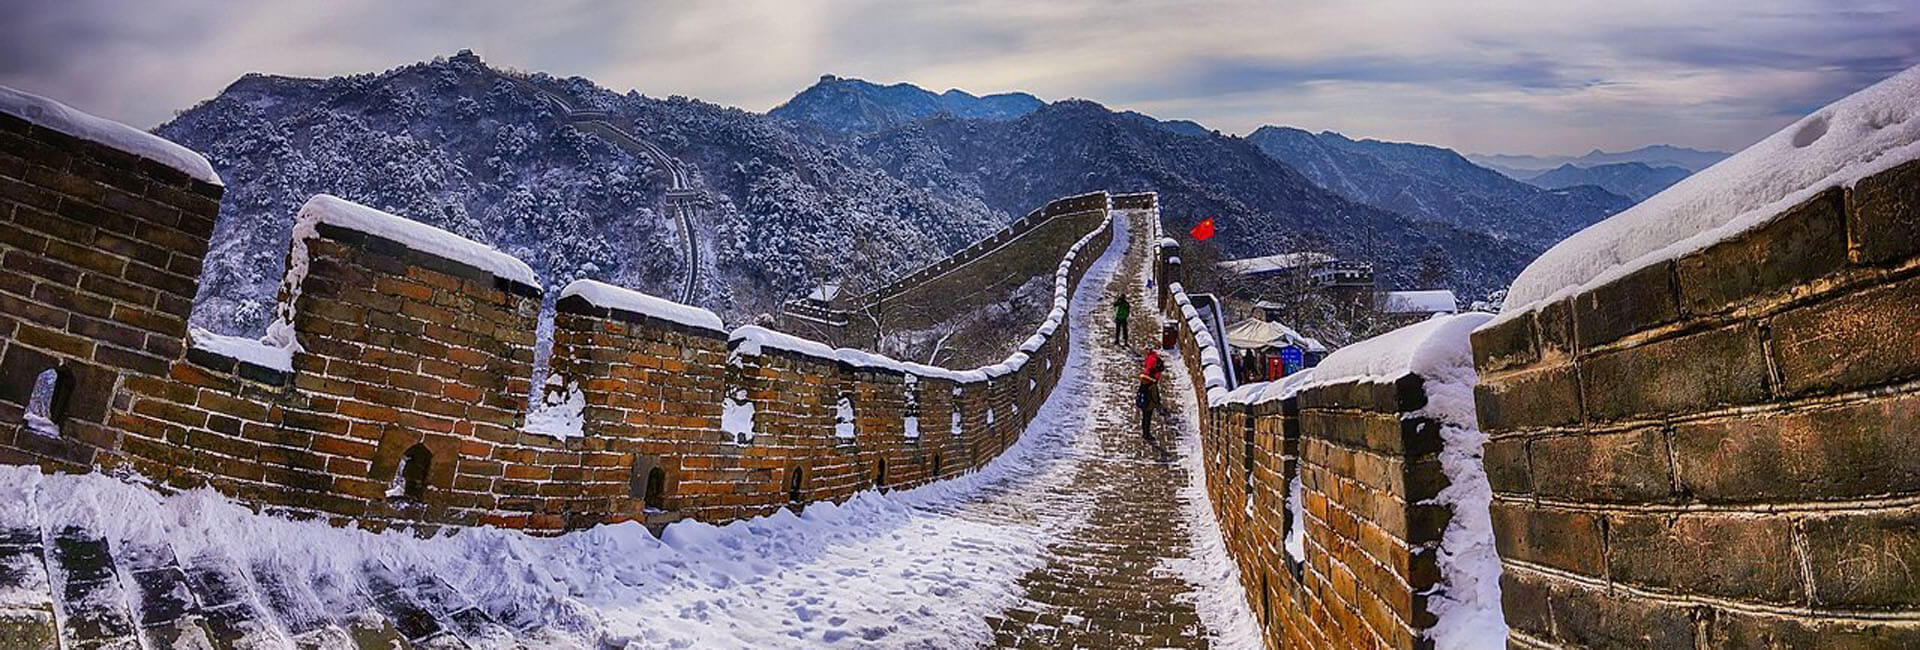 6 Days Amazing Snow Ice Tour from Beijing by High Speed Train